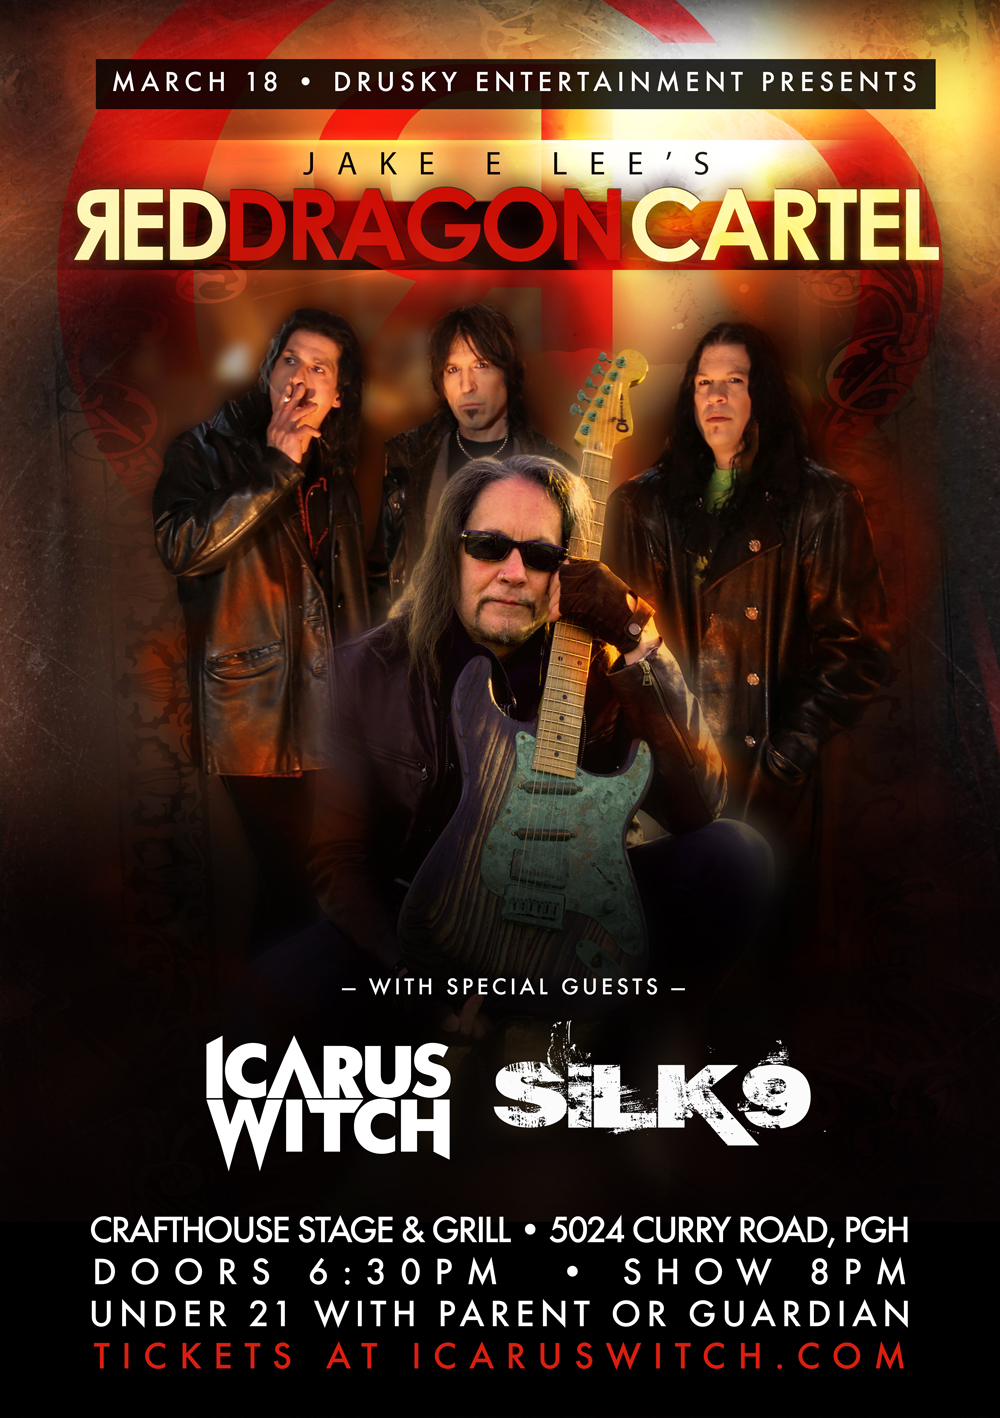 Red-Dragon-Cartel-Flyer_bigCartel.jpg